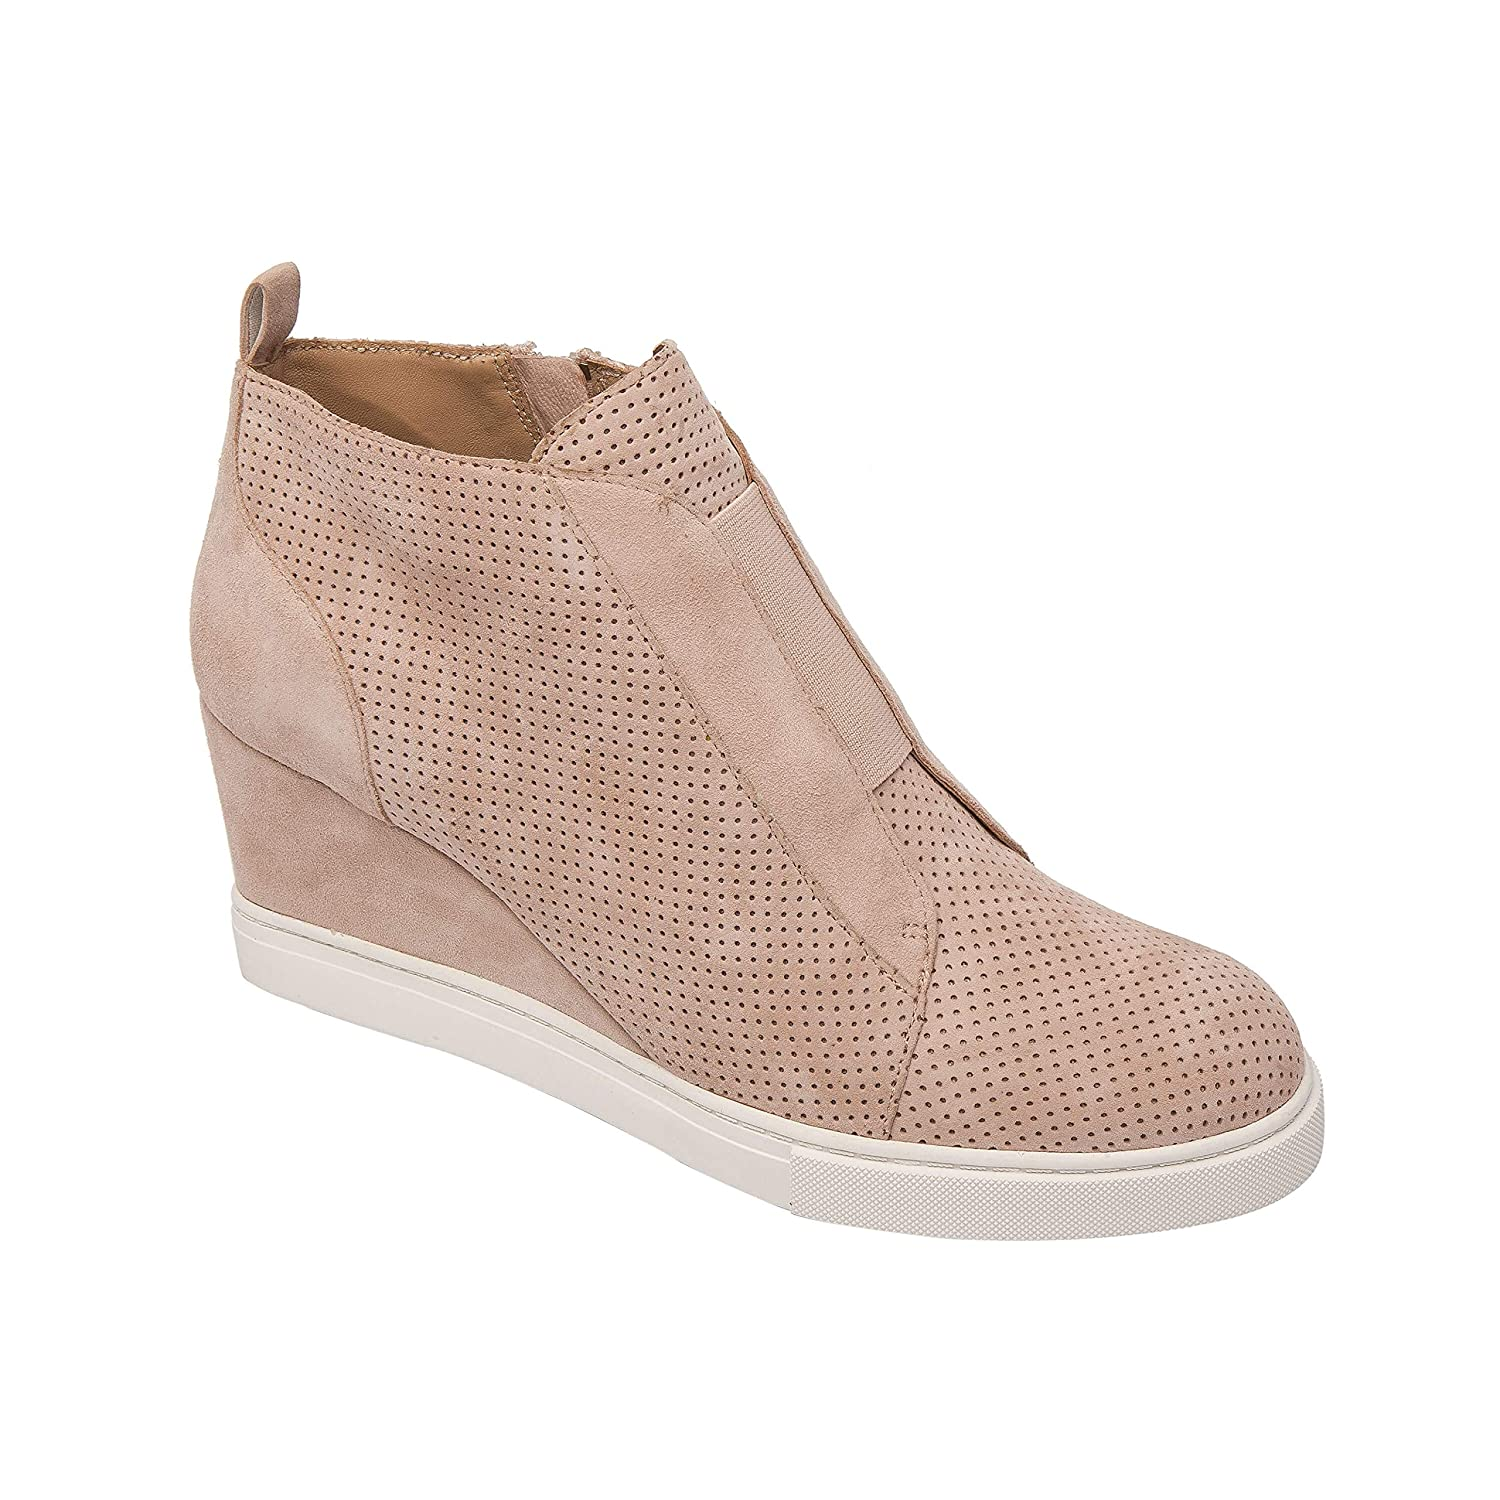 ad86ca8a366cf Amazon.com | Linea Paolo Felicia | Platform Wedge Bootie Sneaker Blush  Perforated Suede 4.5M | Fashion Sneakers